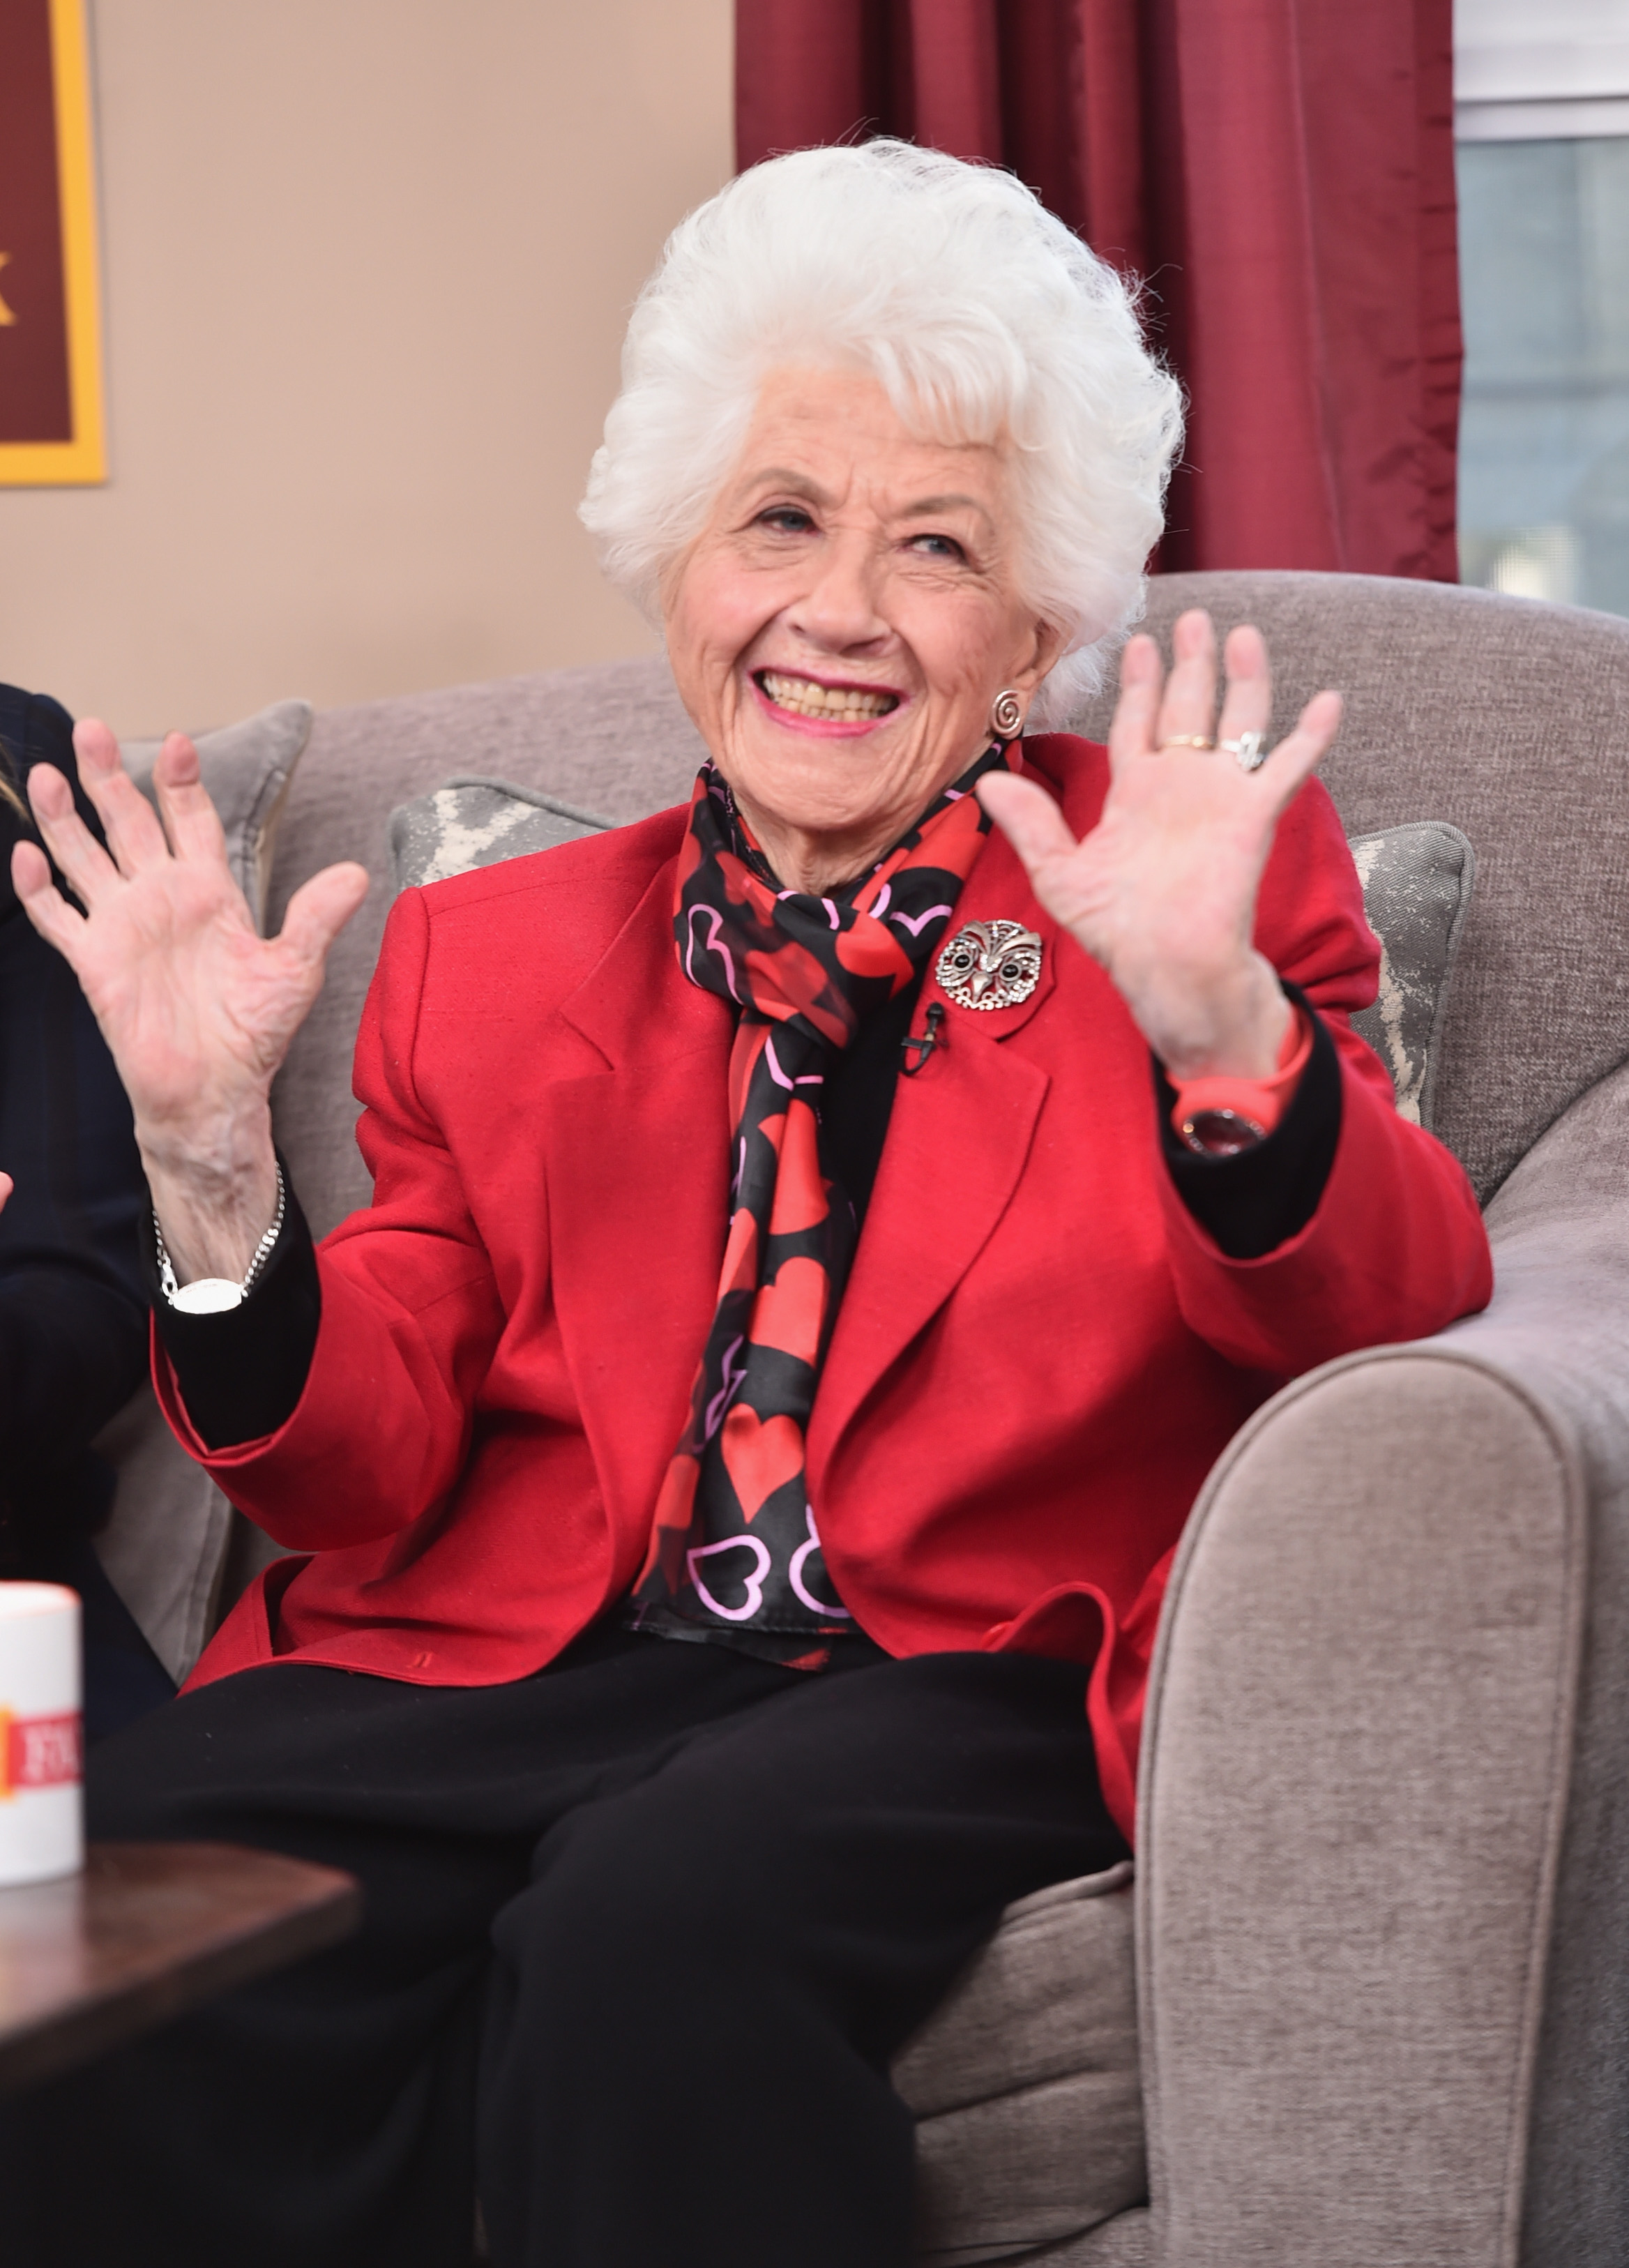 Actress Charlotte Rae attends Hallmark's Home and Family 'Facts Of Life Reunion' at Universal Studios Backlot on February 12, 2016 in Universal City, California.